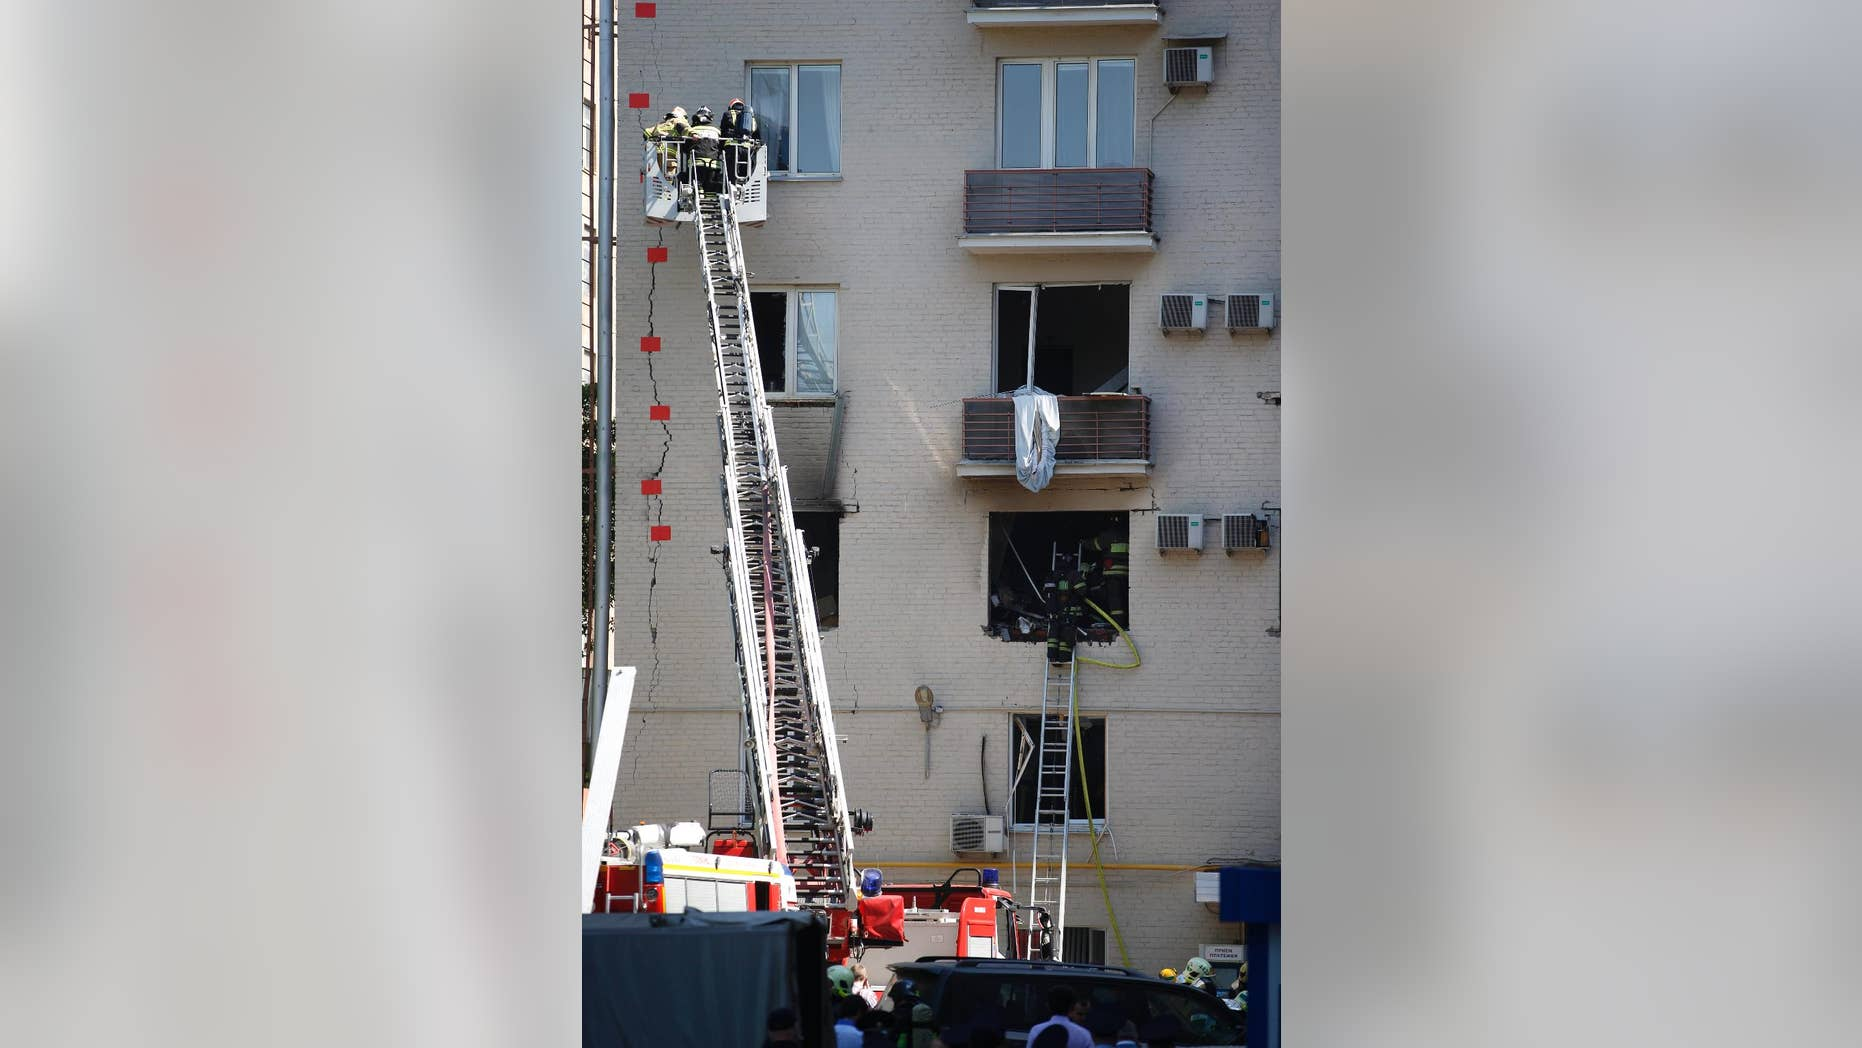 Firefighters on a ladder mark a big crack on the wall of a damaged apartment building after an explosion in downtown Moscow, Thursday, May 22, 2014. The apartment building in downtown Moscow was damaged by an explosion, which officials said was caused by a natural gas leak. (AP Photo/ Pavel Golovkin)